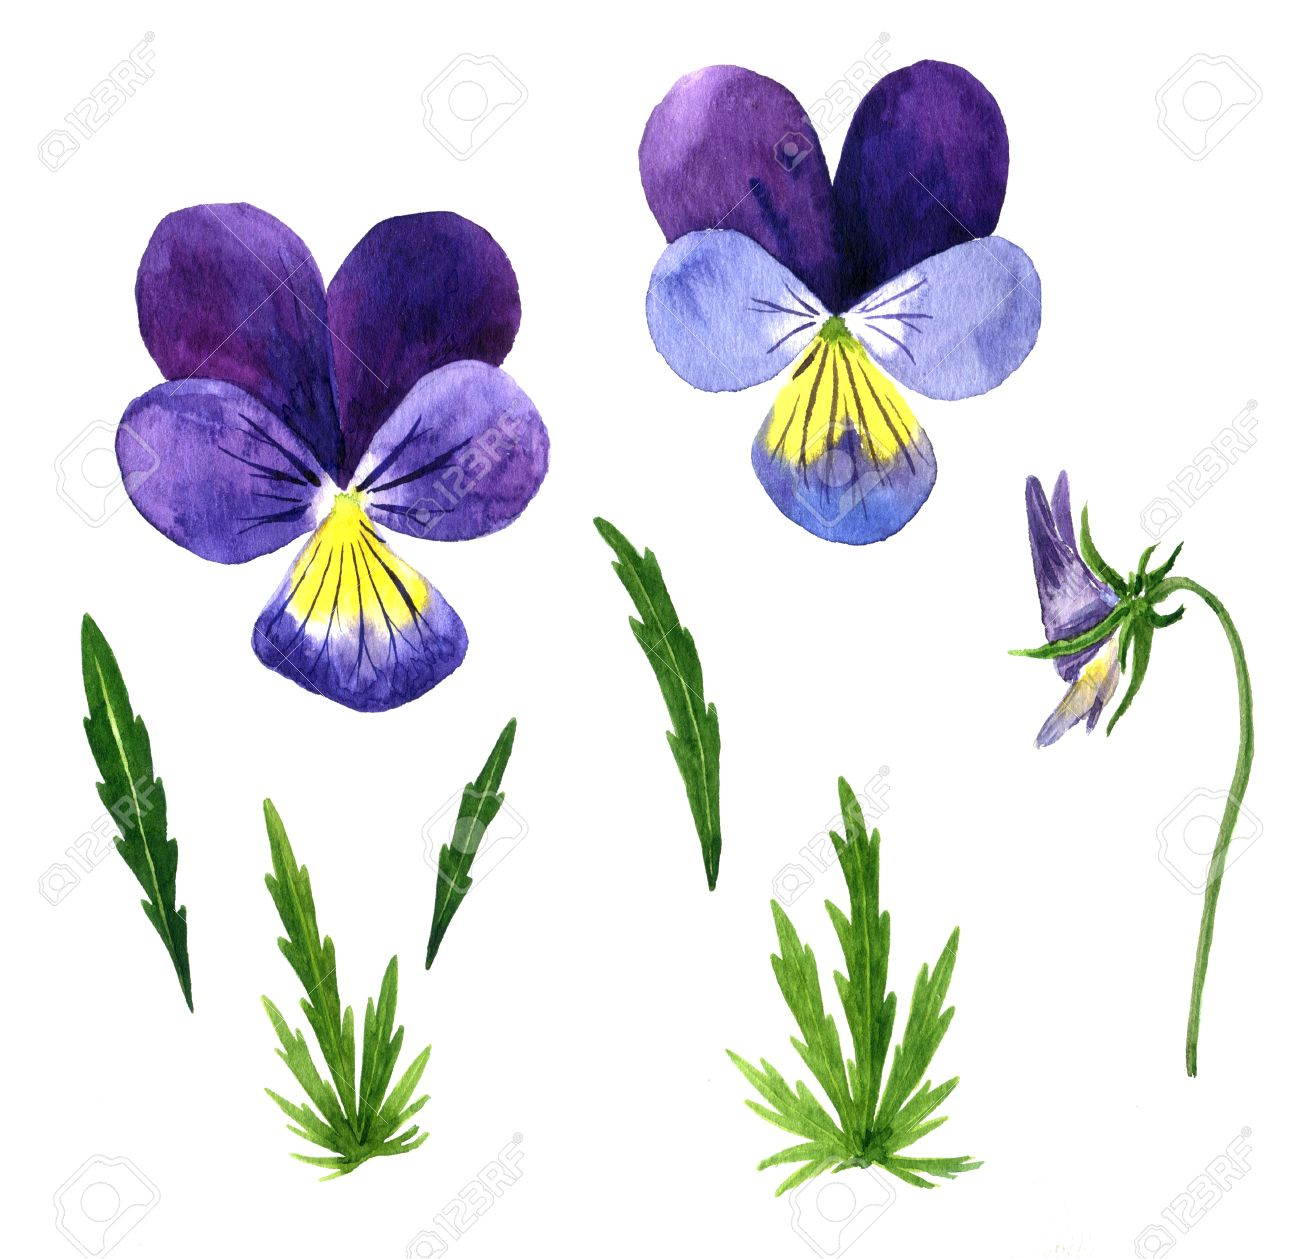 Set Of Watercolor Drawing Violet Flowers Buds And Leaves Pansies Painted Wild Plants Botanical Illustration In Vintage Style Color Drawing Floral Set Hand Drawn Illustration Banco De Imagens Royalty Free Ilustracoes Imagens E